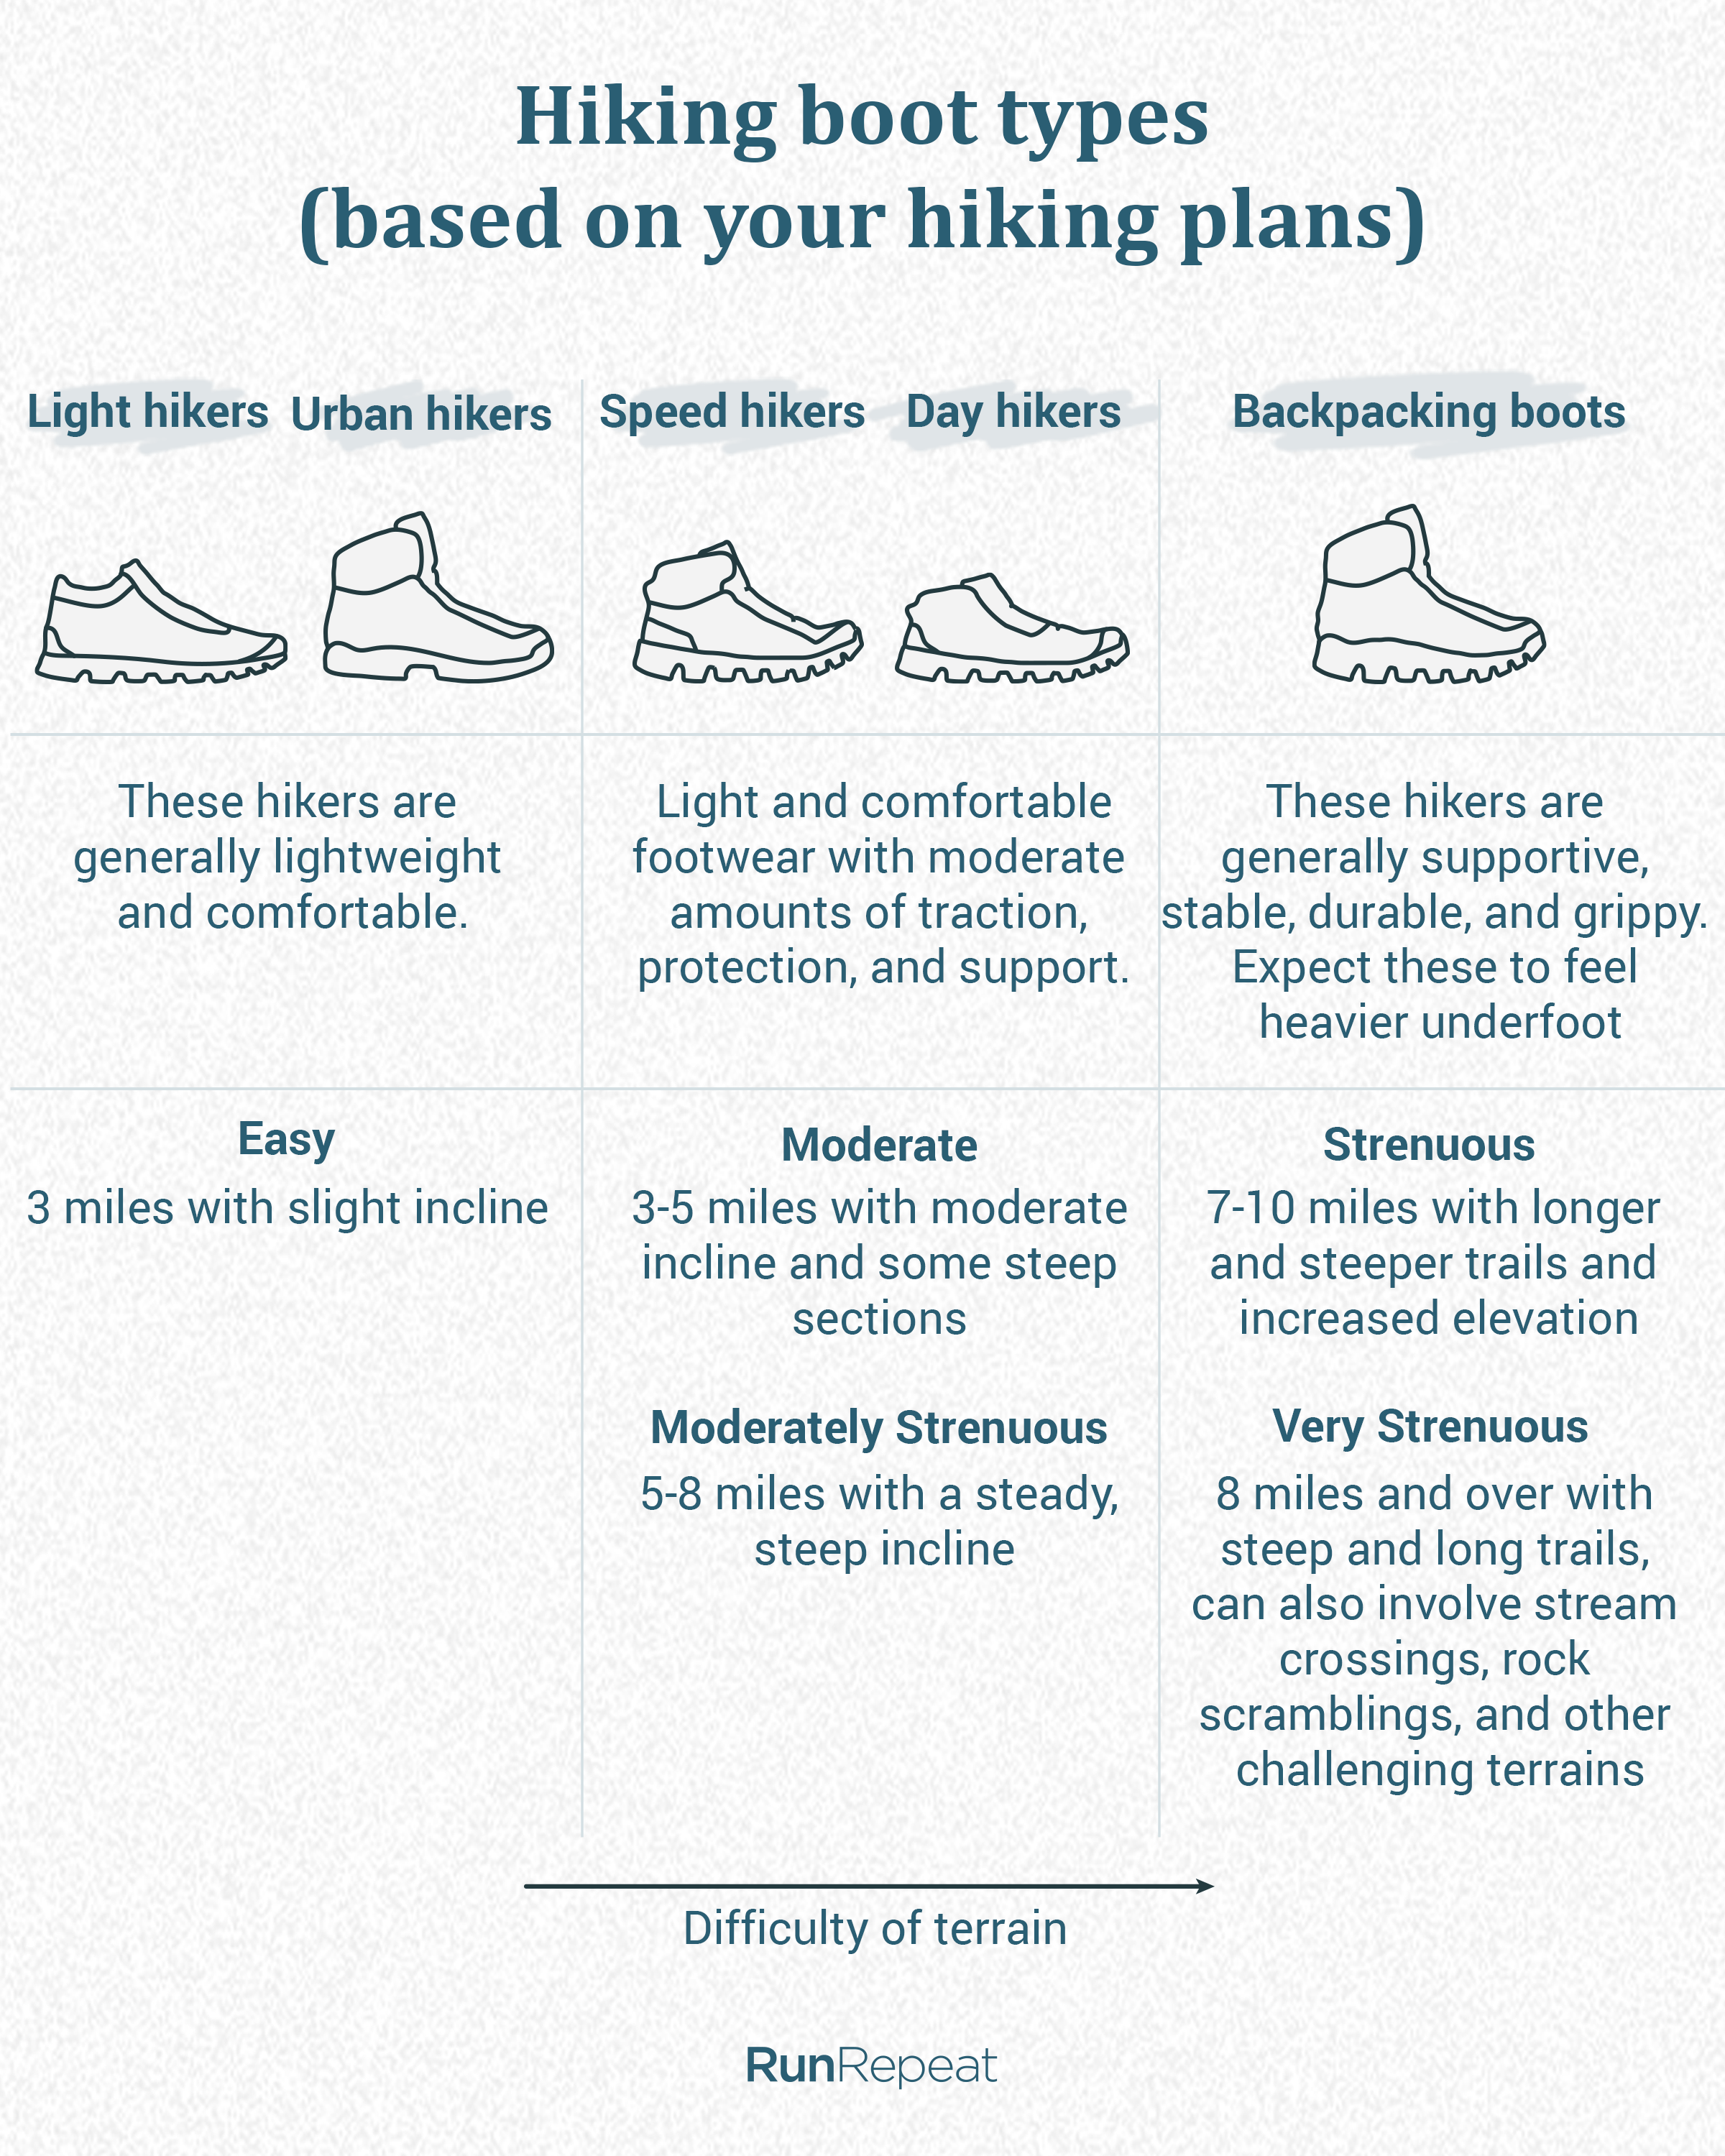 Hiking boot types - based on your hiking plans.png